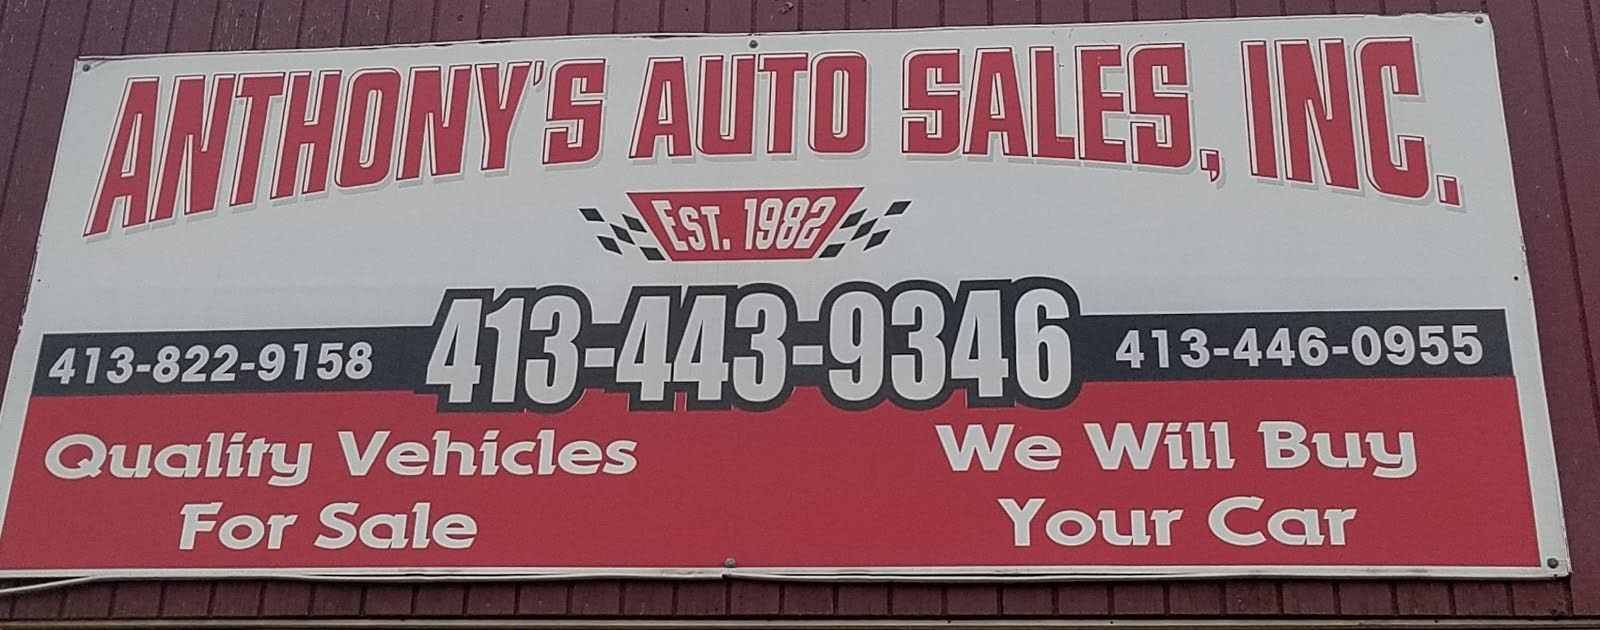 BMW Dealers In Ma >> Anthony's Auto Sales Inc. - Pittsfield, MA: Read Consumer ...